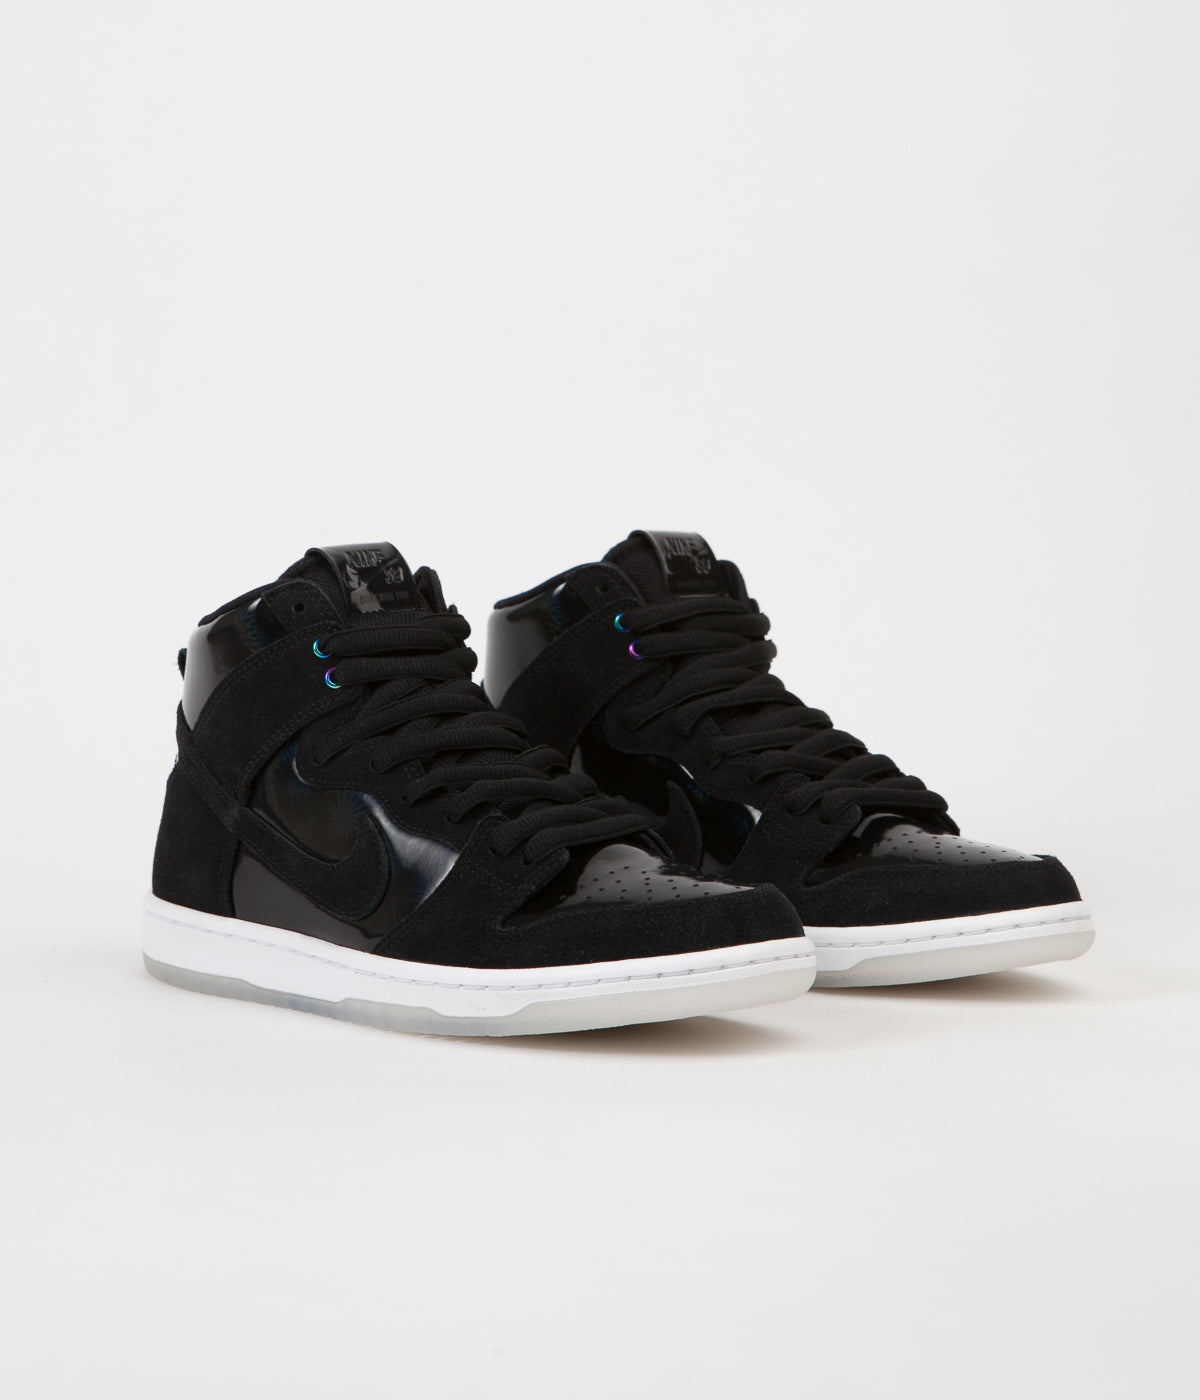 ... Nike SB Dunk High Pro Shoes - Black   Black - White - Clear ... 19102062a